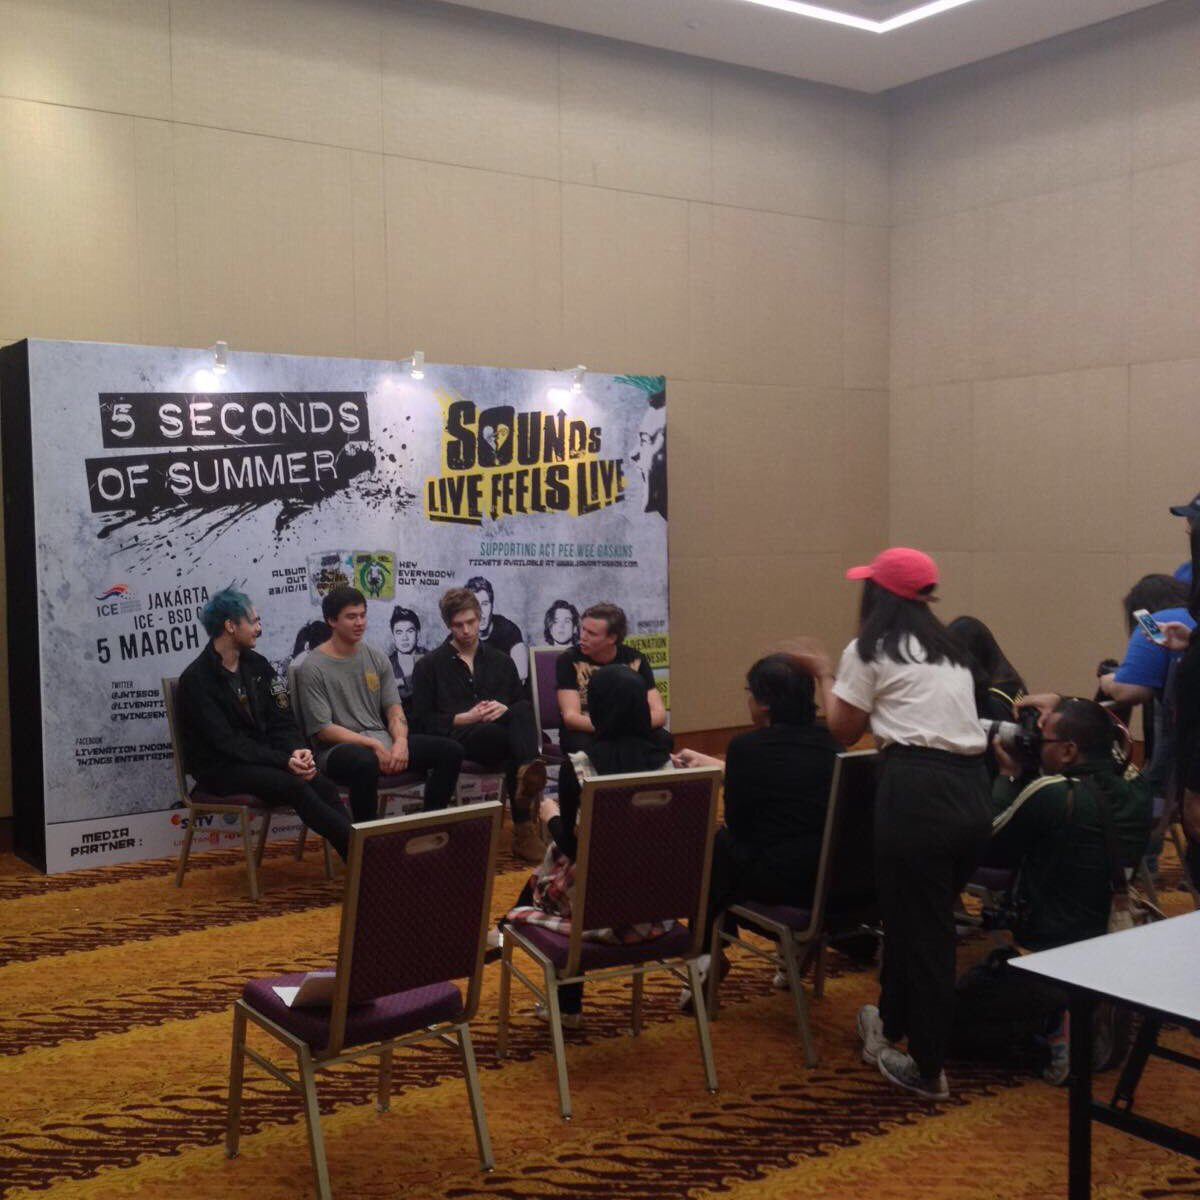 5SOS roundtable interview! @INDONESIA_5SOS https://t.co/aKqX8D6Ktc